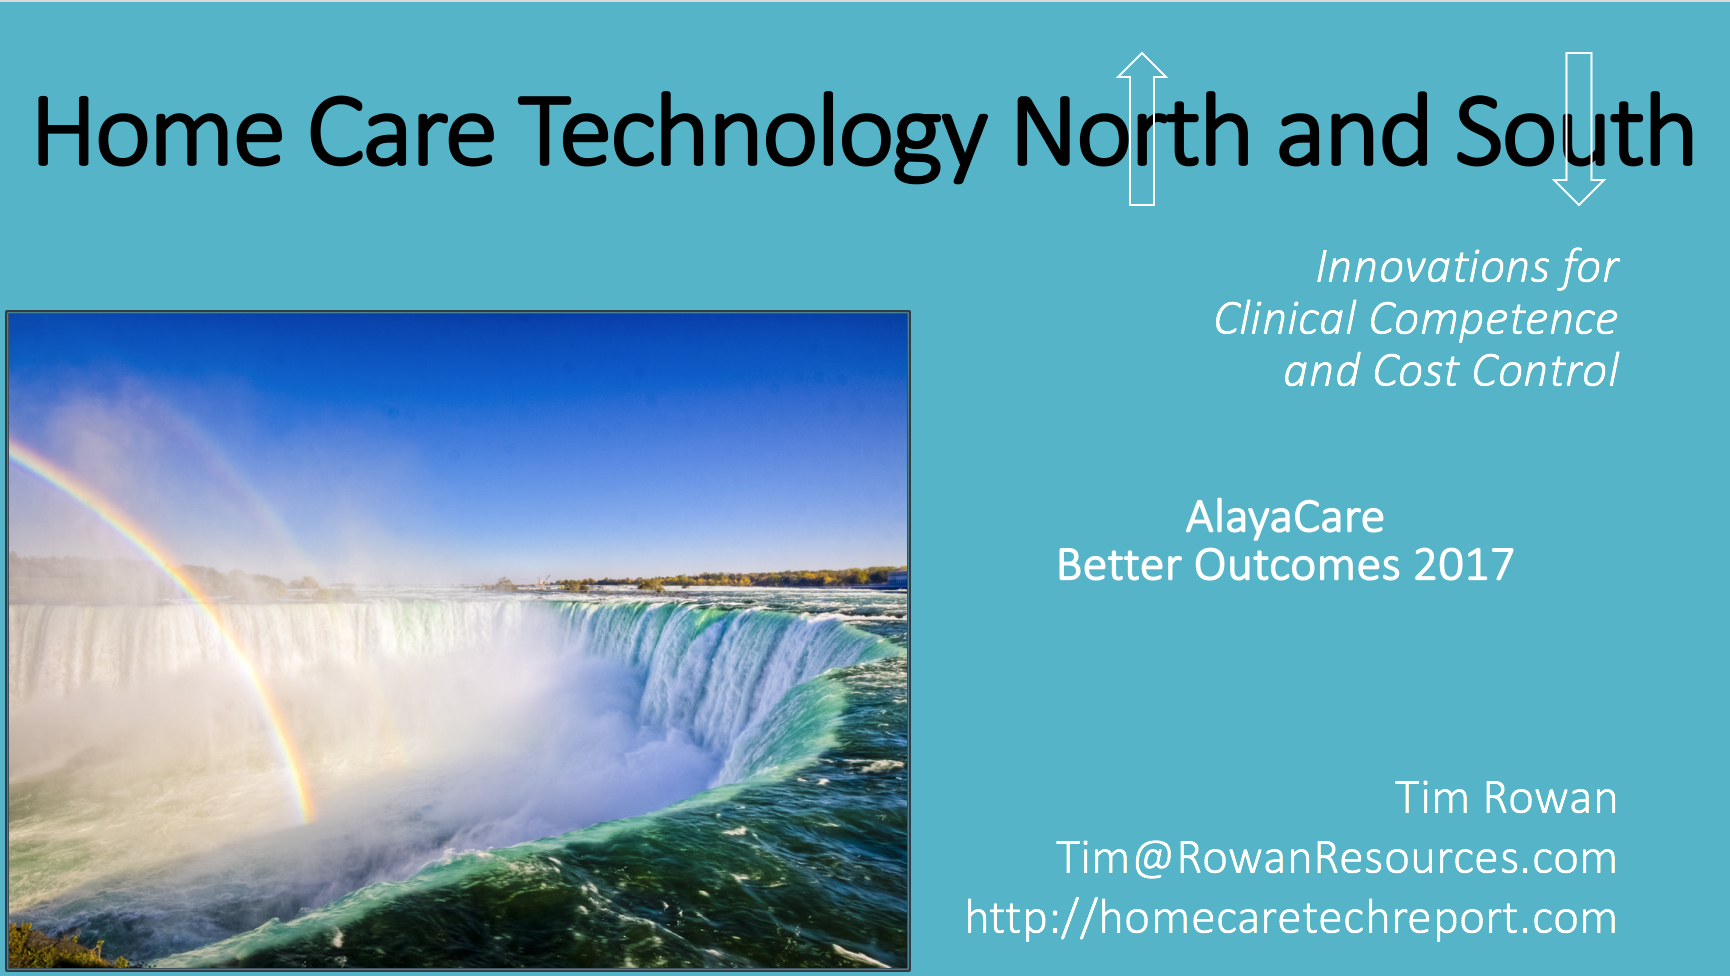 home-care-technology-north-and-south.png